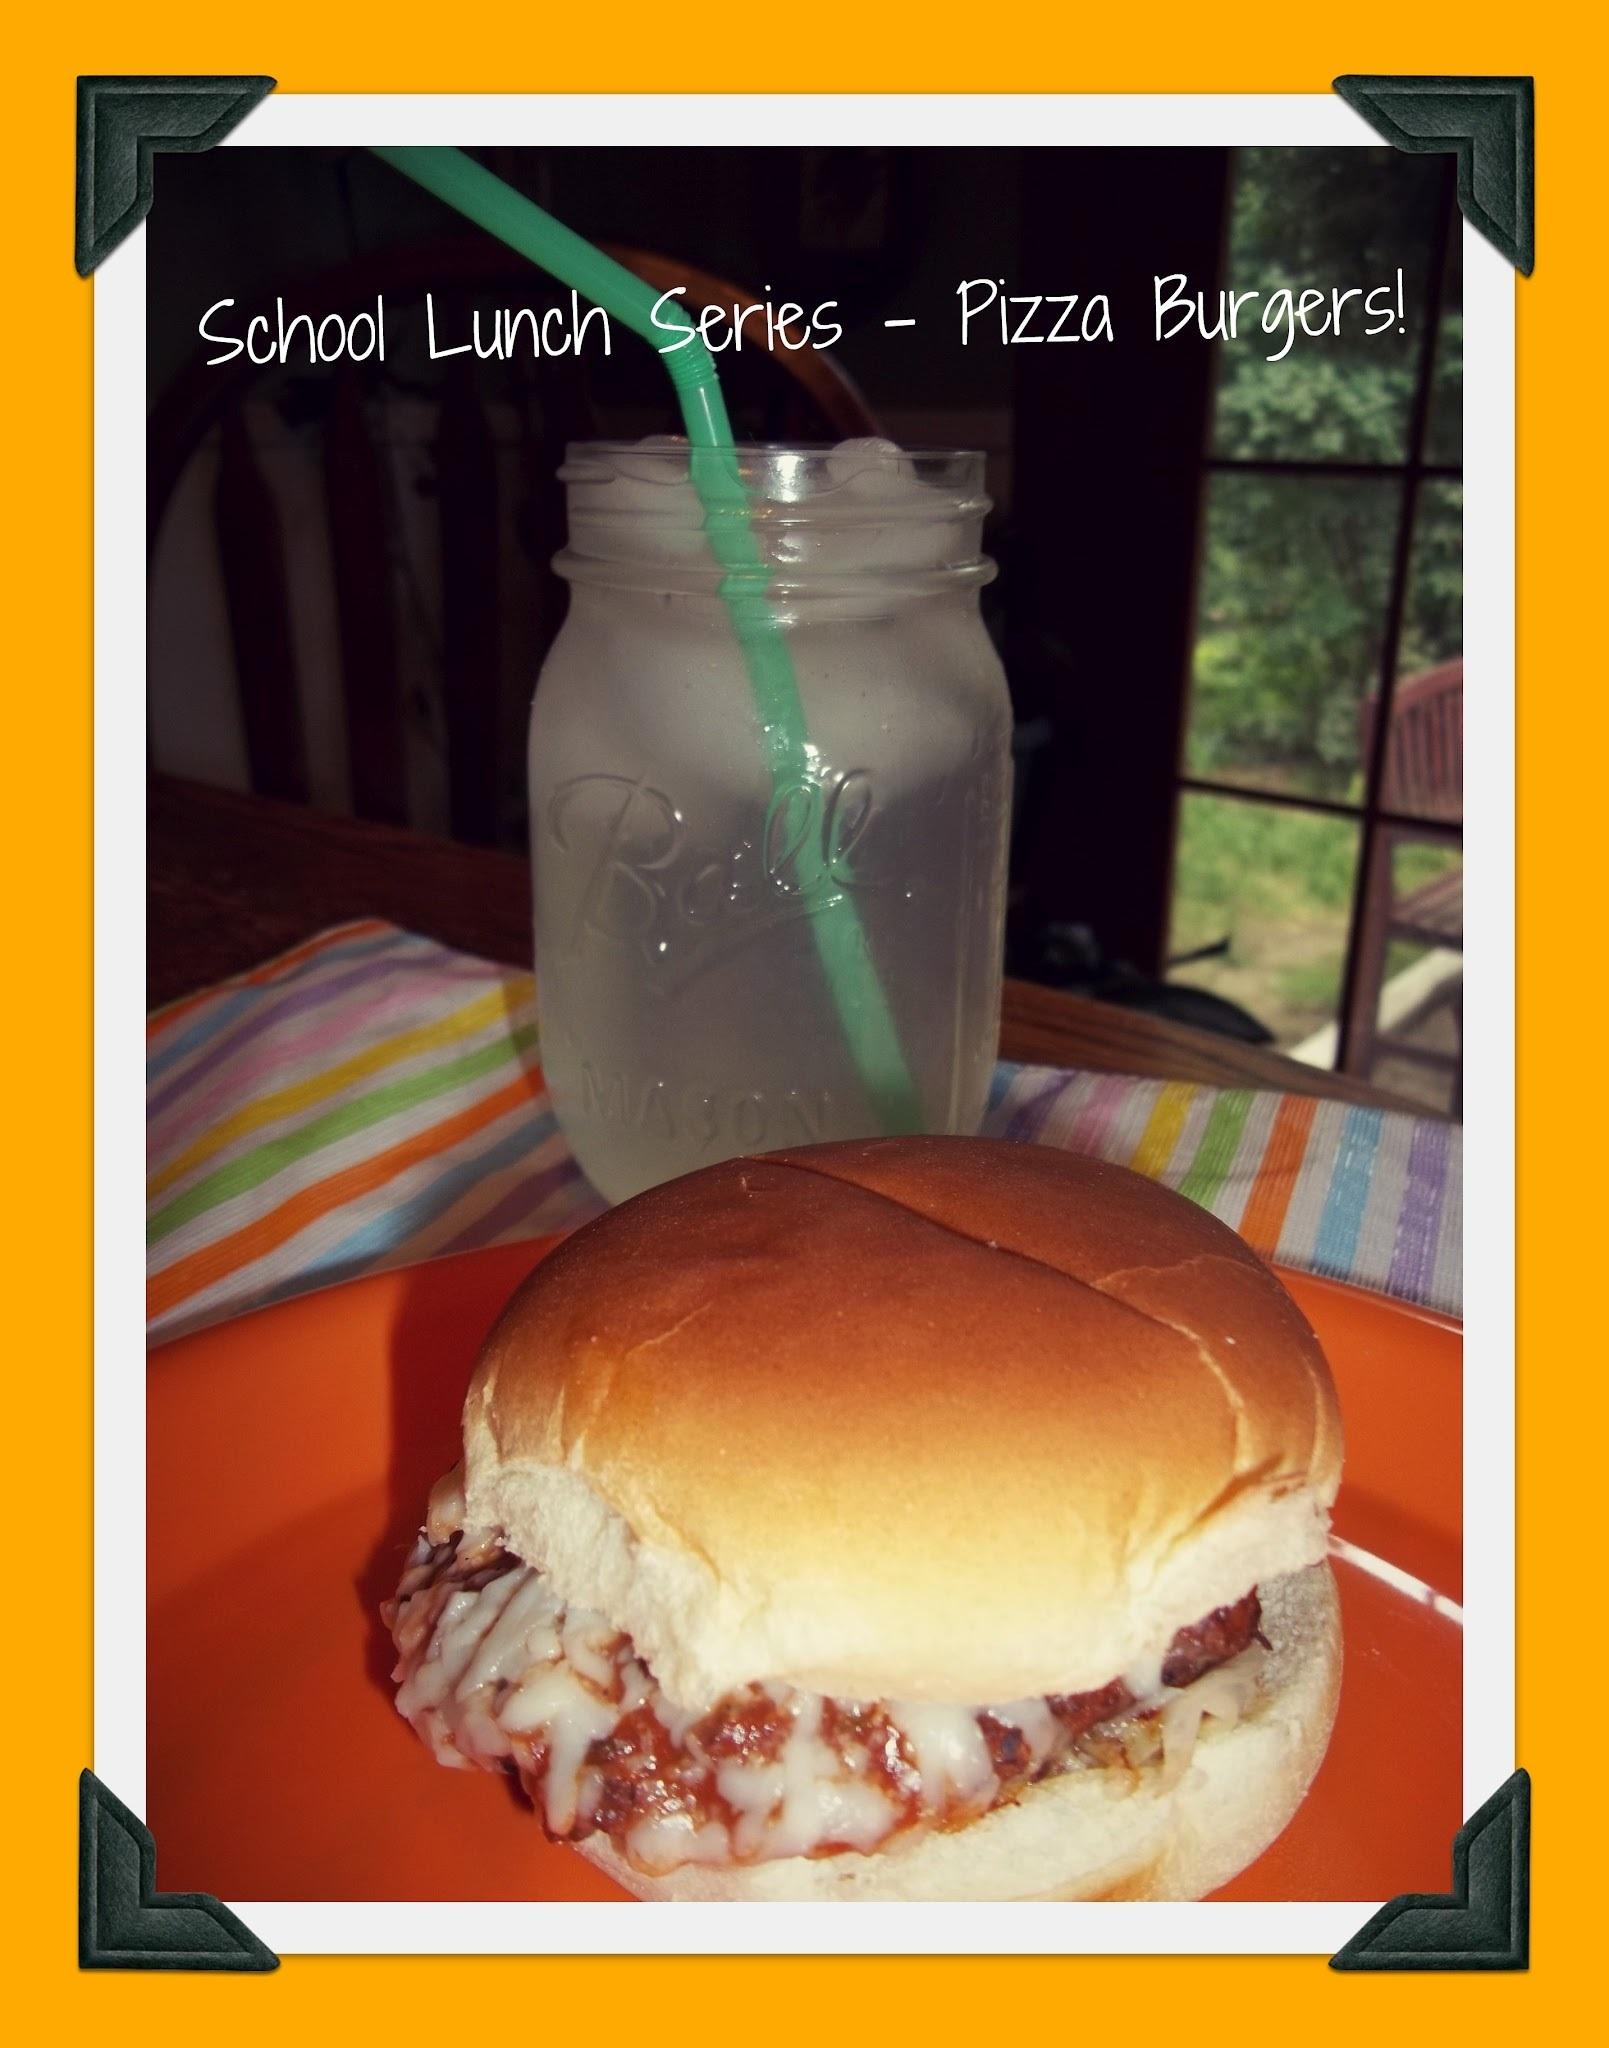 School Lunch Series-Pizza Burgers